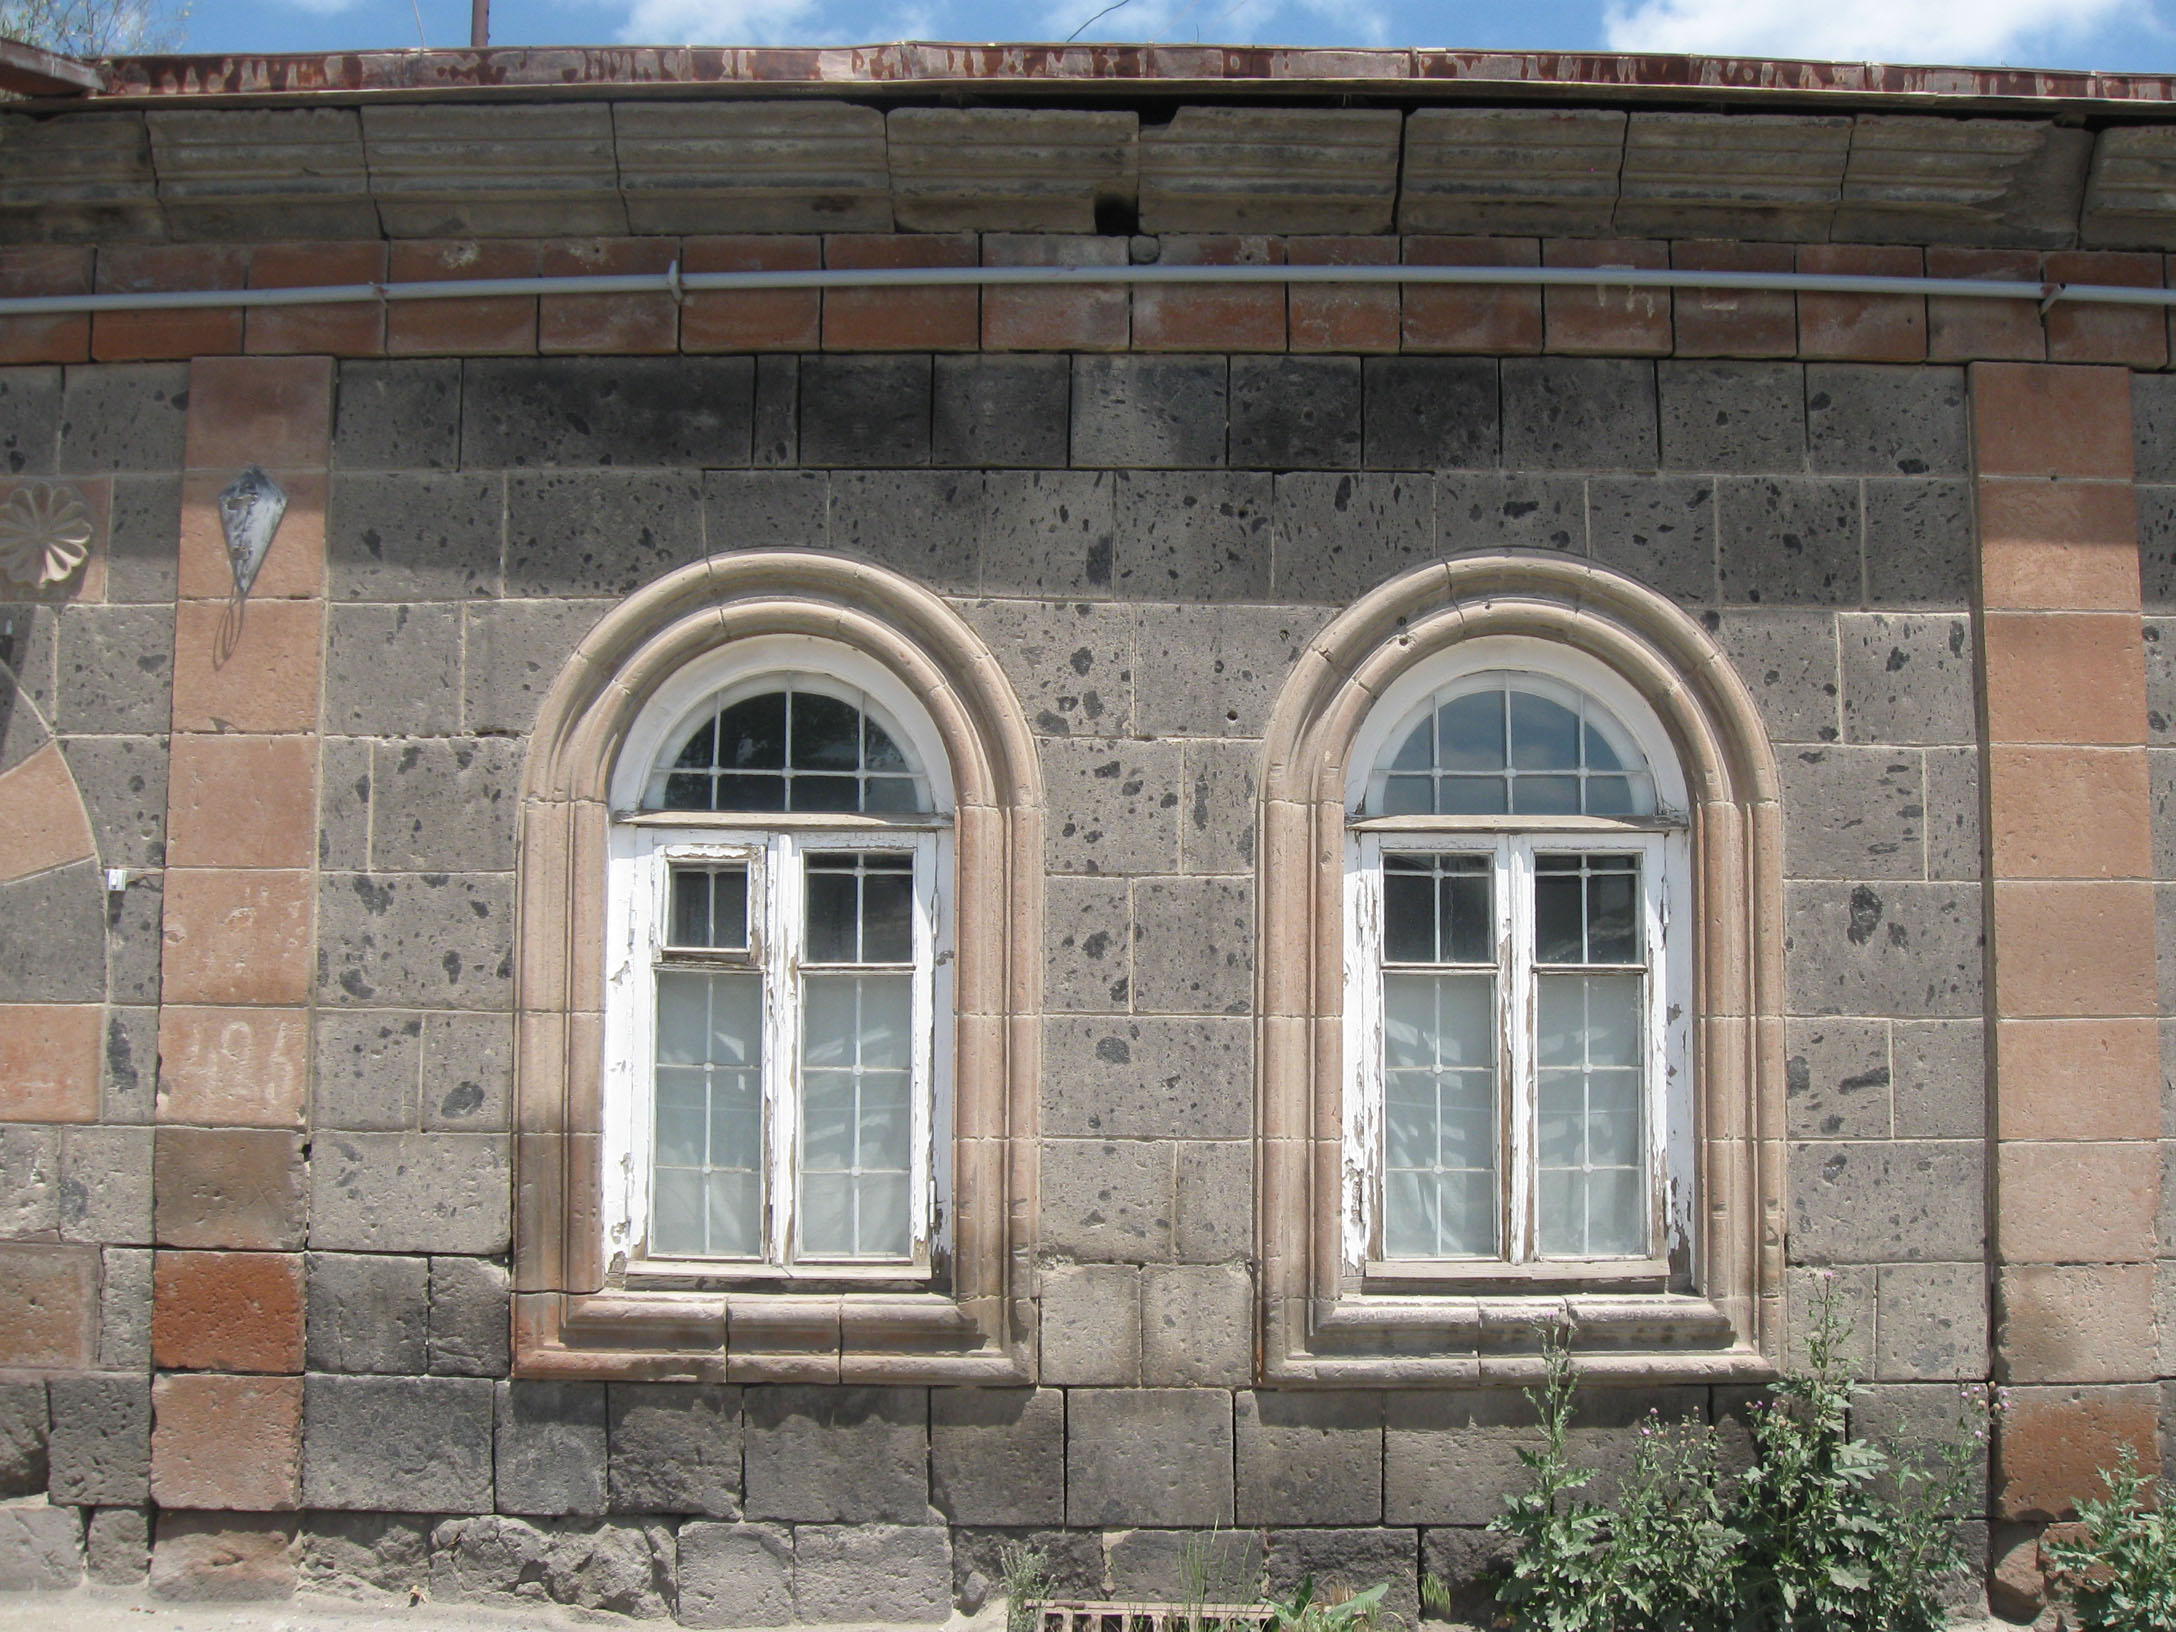 Windows and window frames